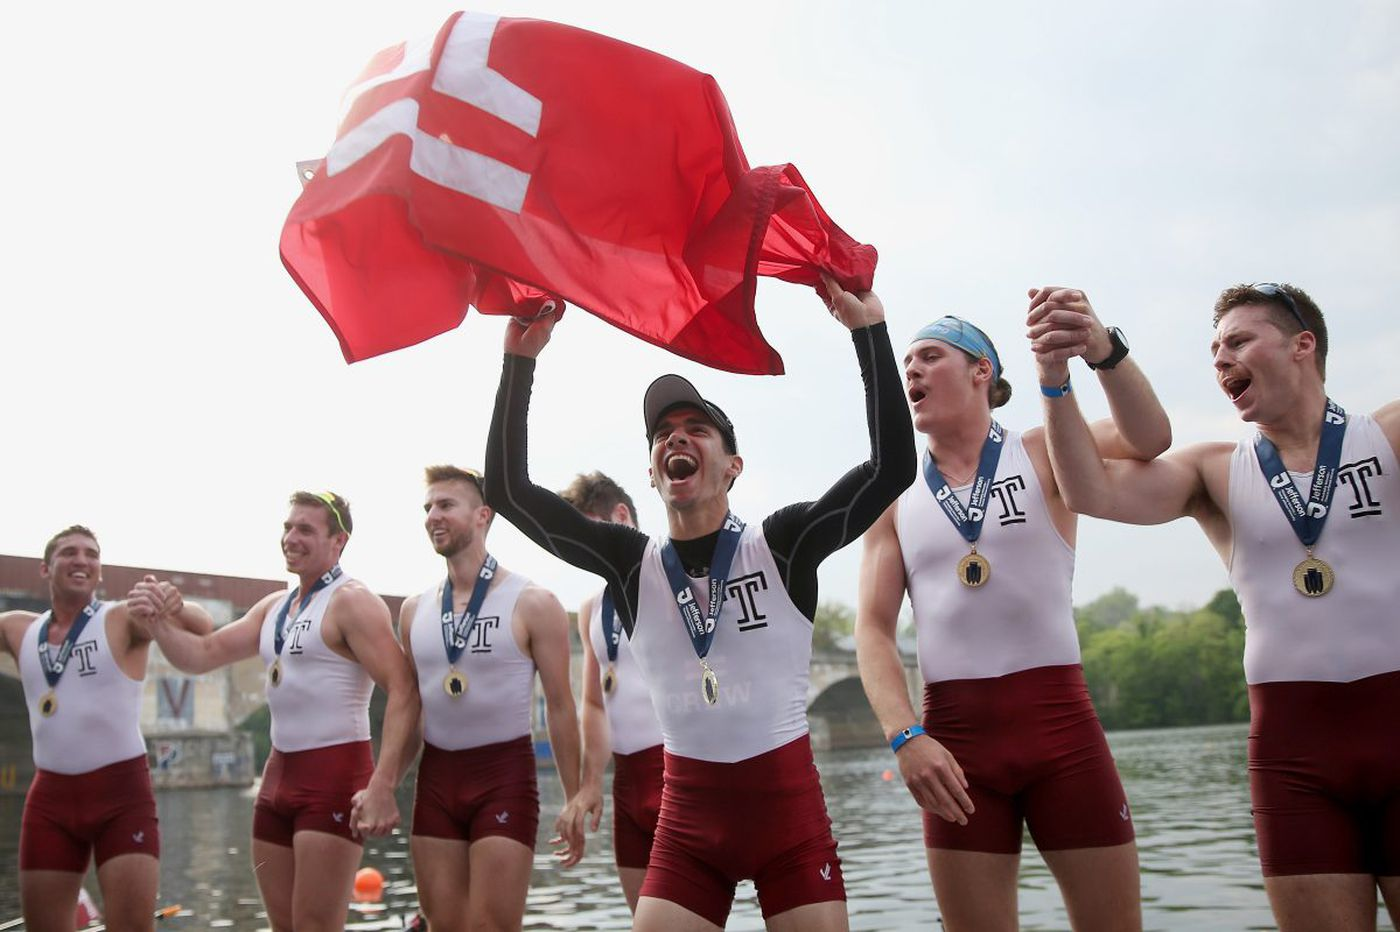 Temple, with a little help, wins men's varsity eight race at Dad Vail Regatta